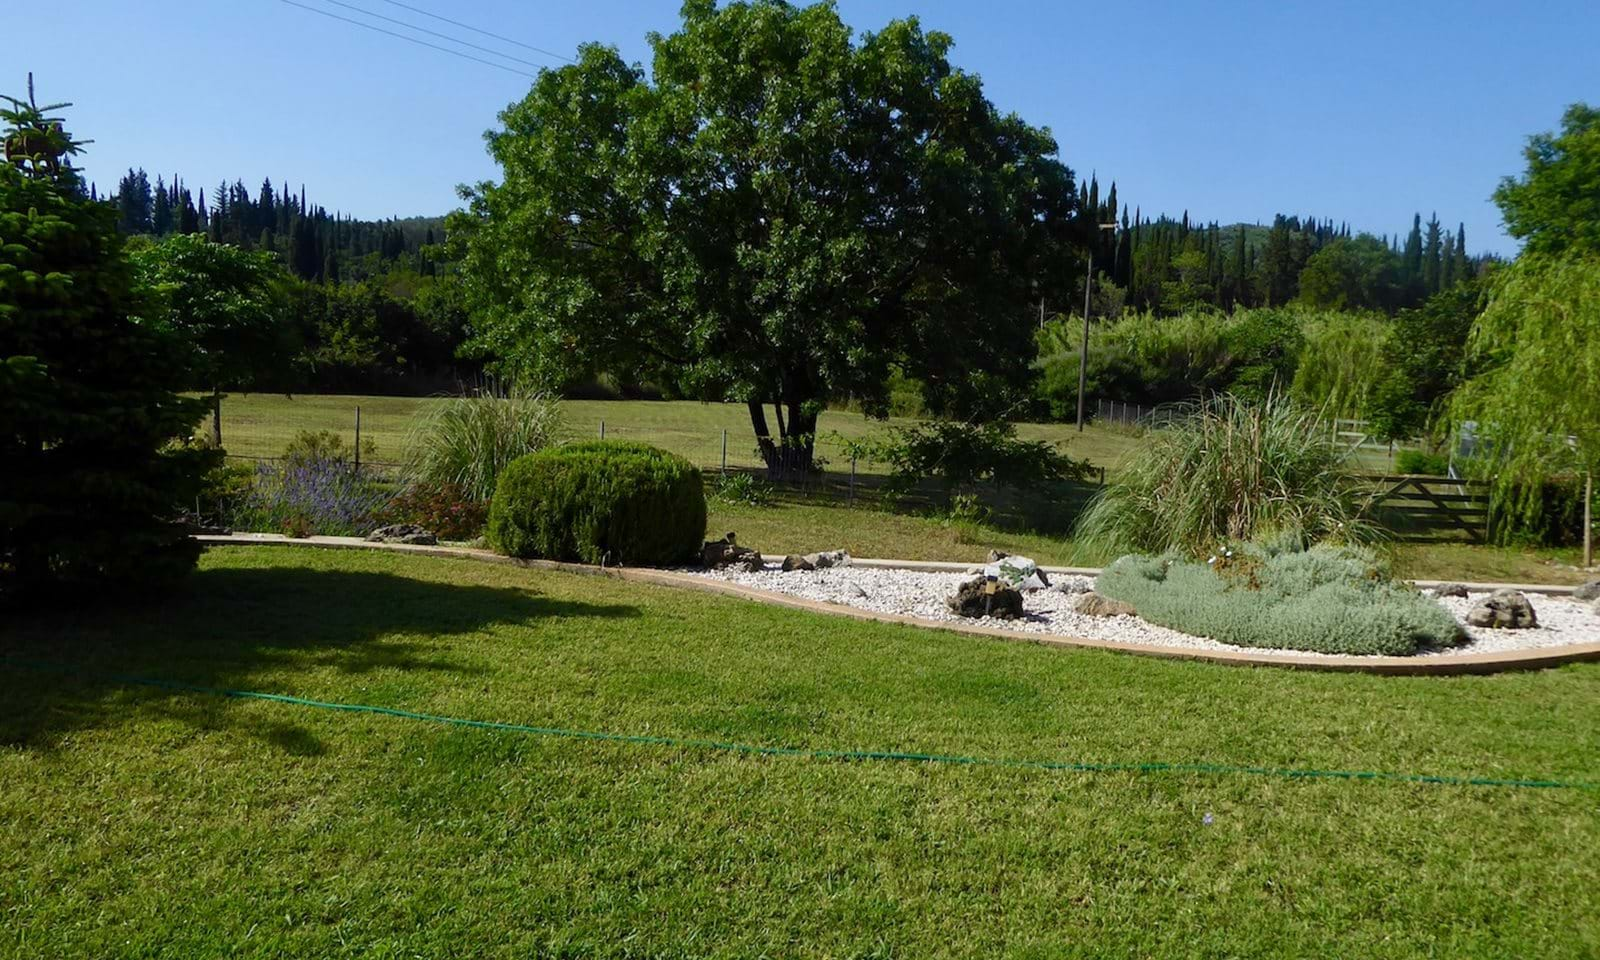 House for Sale in Doukades, Corfu Meadow View